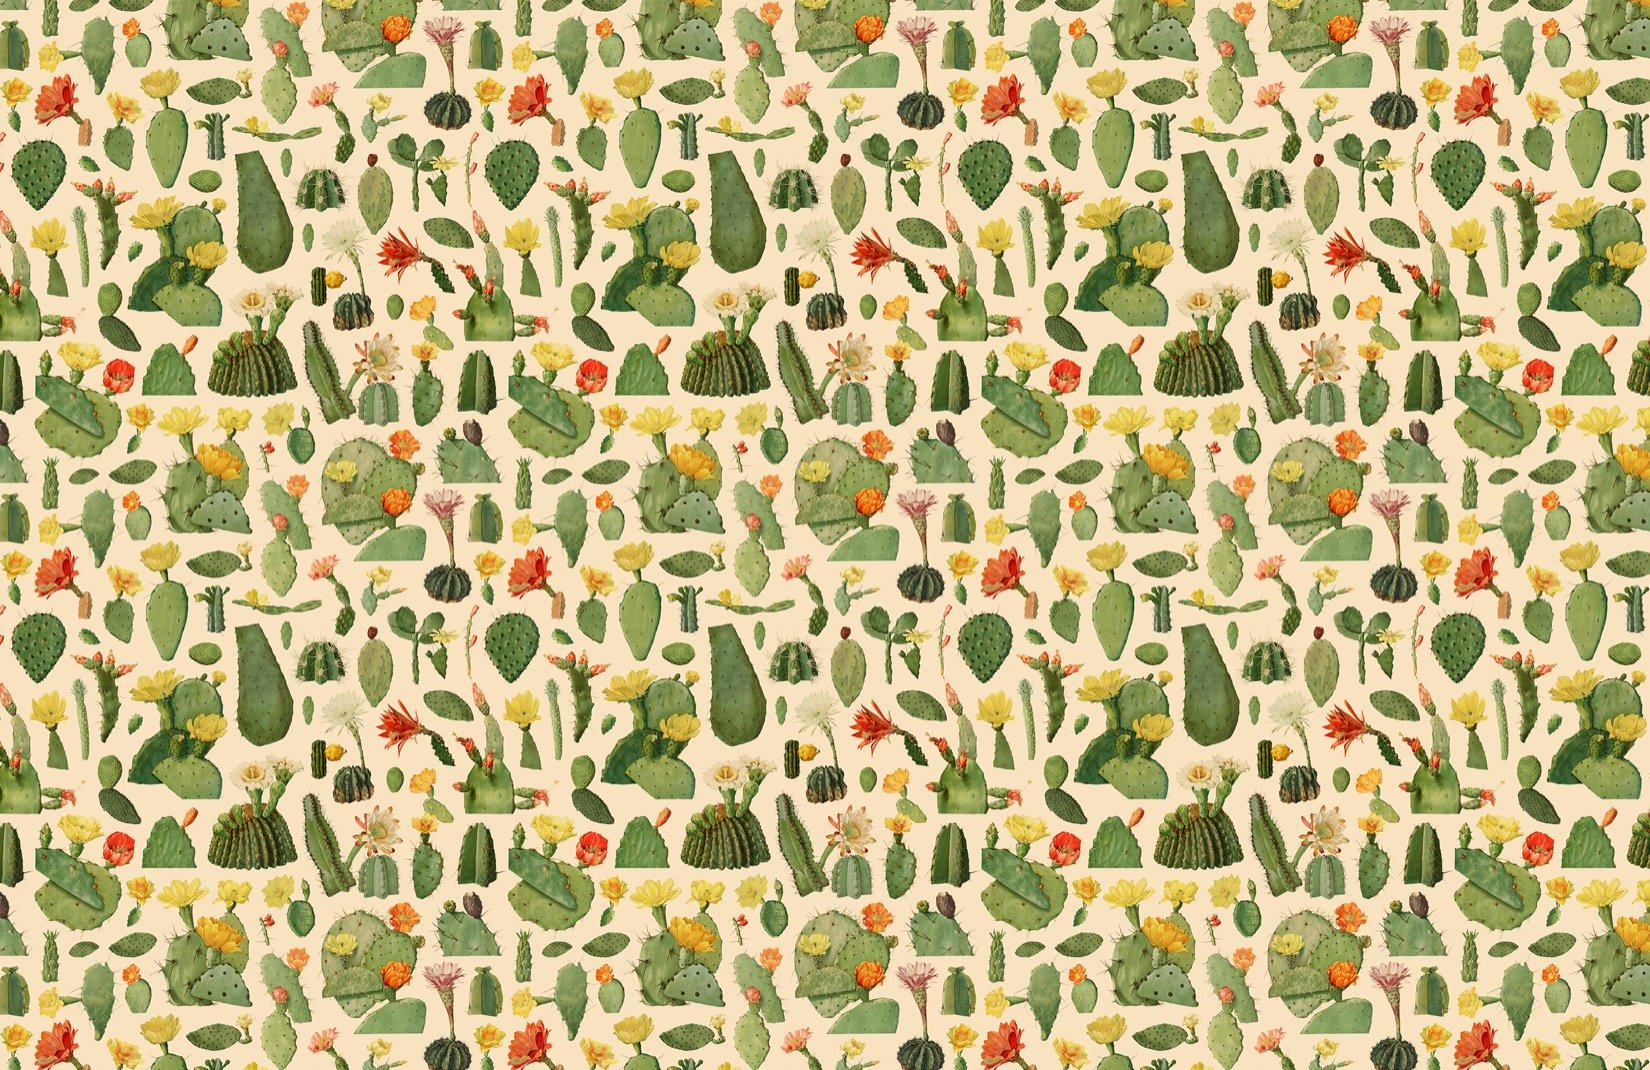 Green Cactus Succulent Pattern Wallpaper Mural 1650x1070 Download Hd Wallpaper Wallpapertip